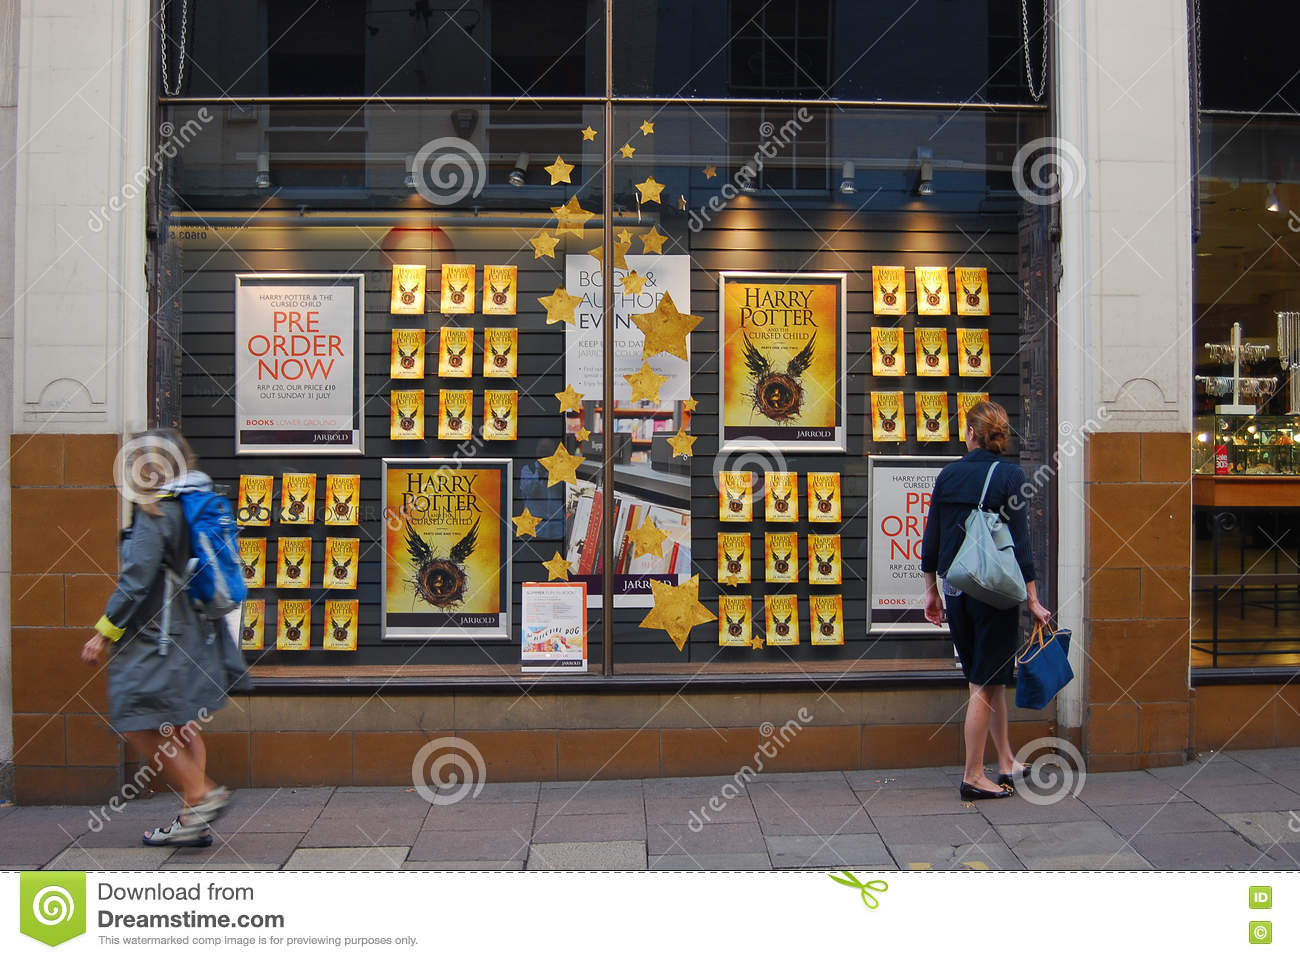 Harry Potter Display Book Store Window Displays Pictures To Pin On Pinterest